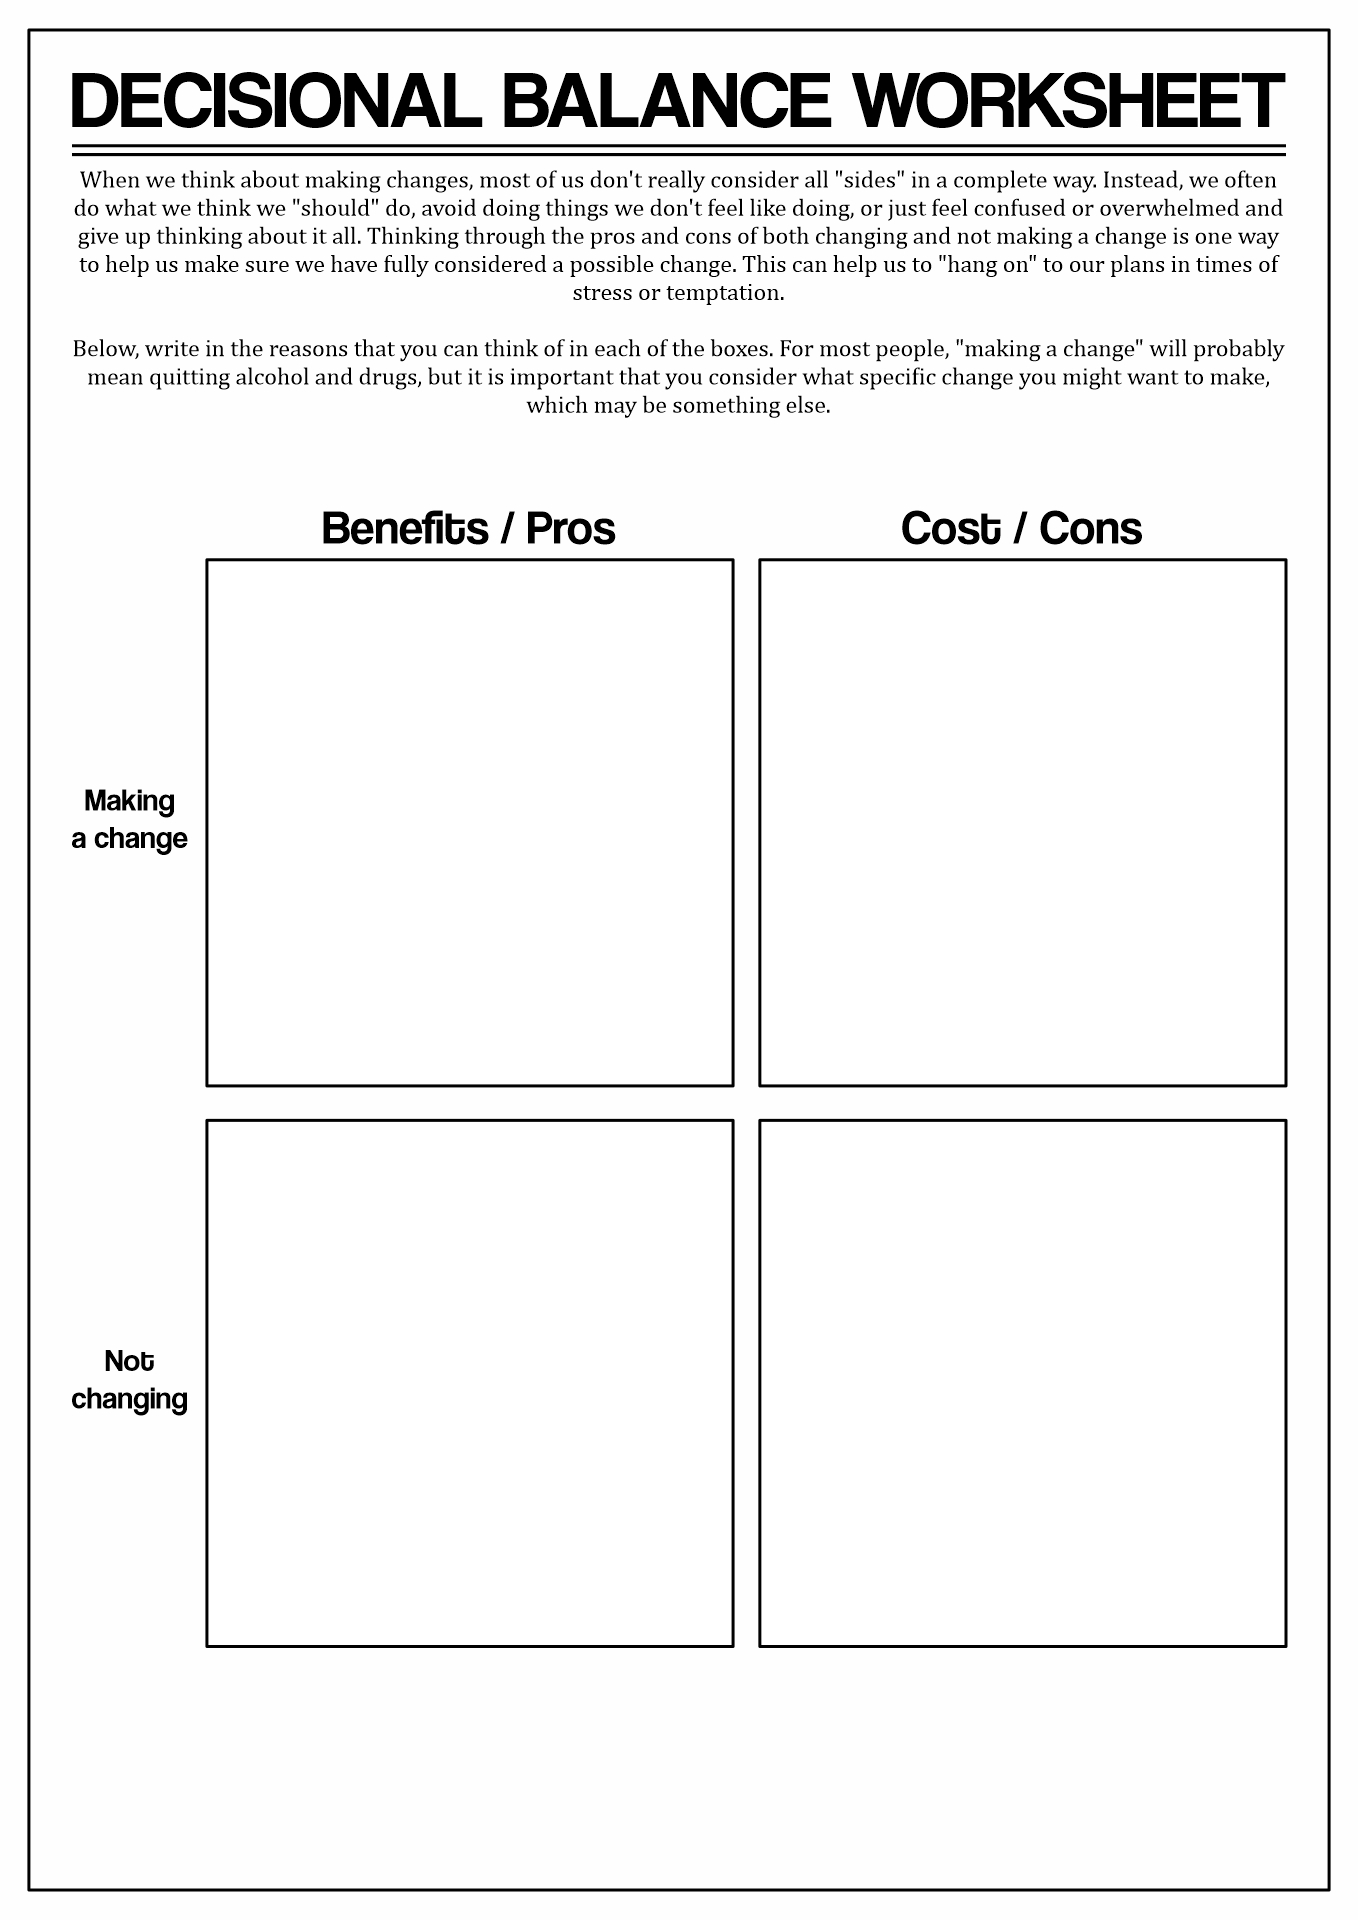 Stages Of Change Decisional Worksheet